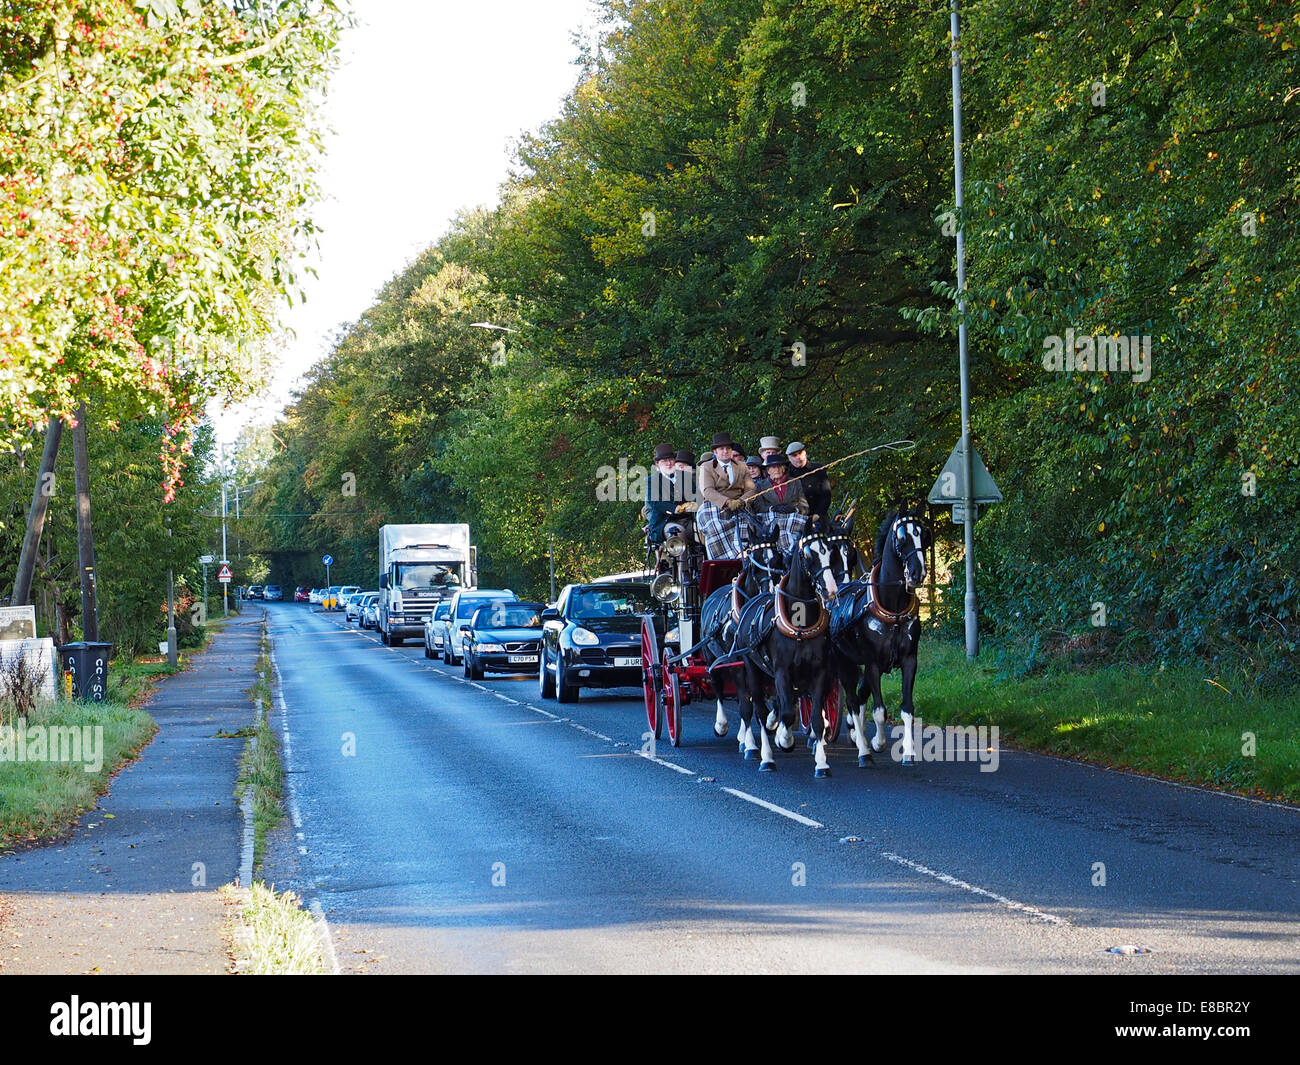 Stokenchurch, Buckinghamshire, UK. 4th October, 2014. This image shows a 19th Century horse-drawn stagecoach, the - Stock Image